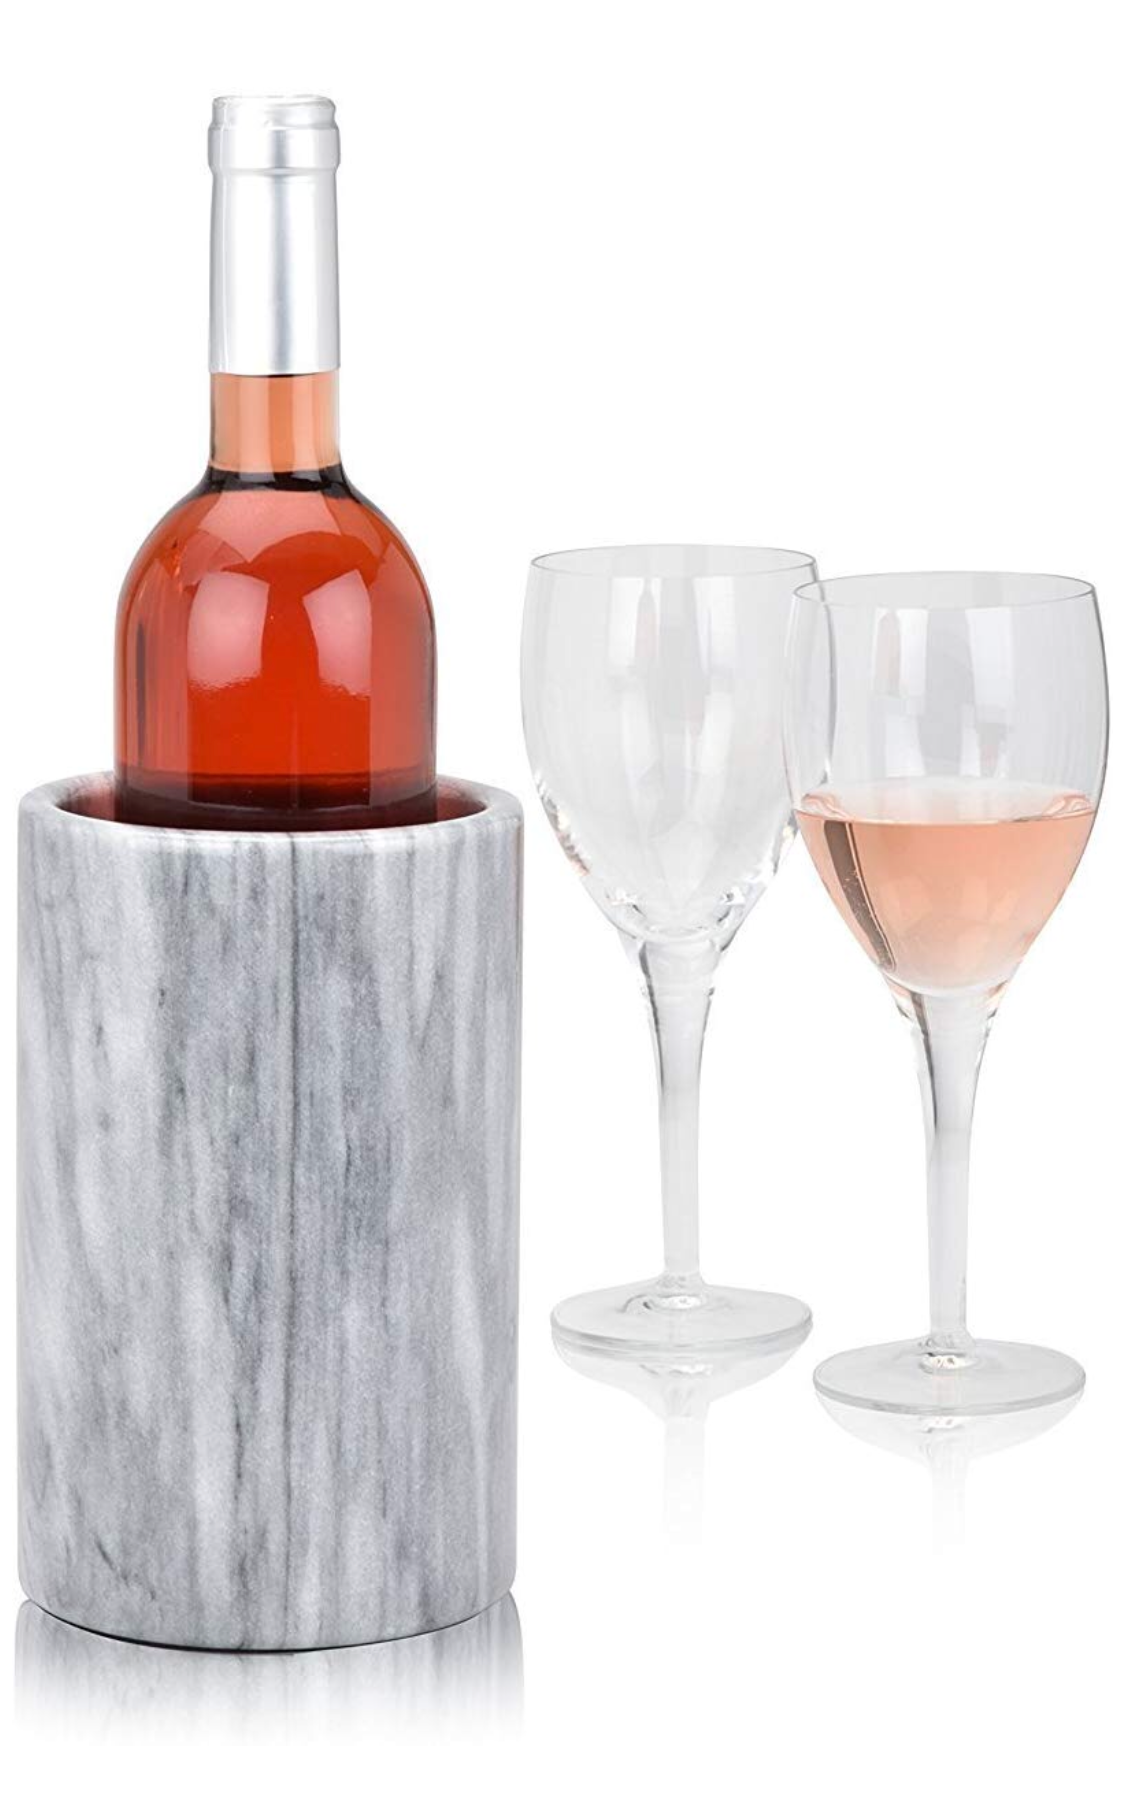 Amazon Wine Cooler.png